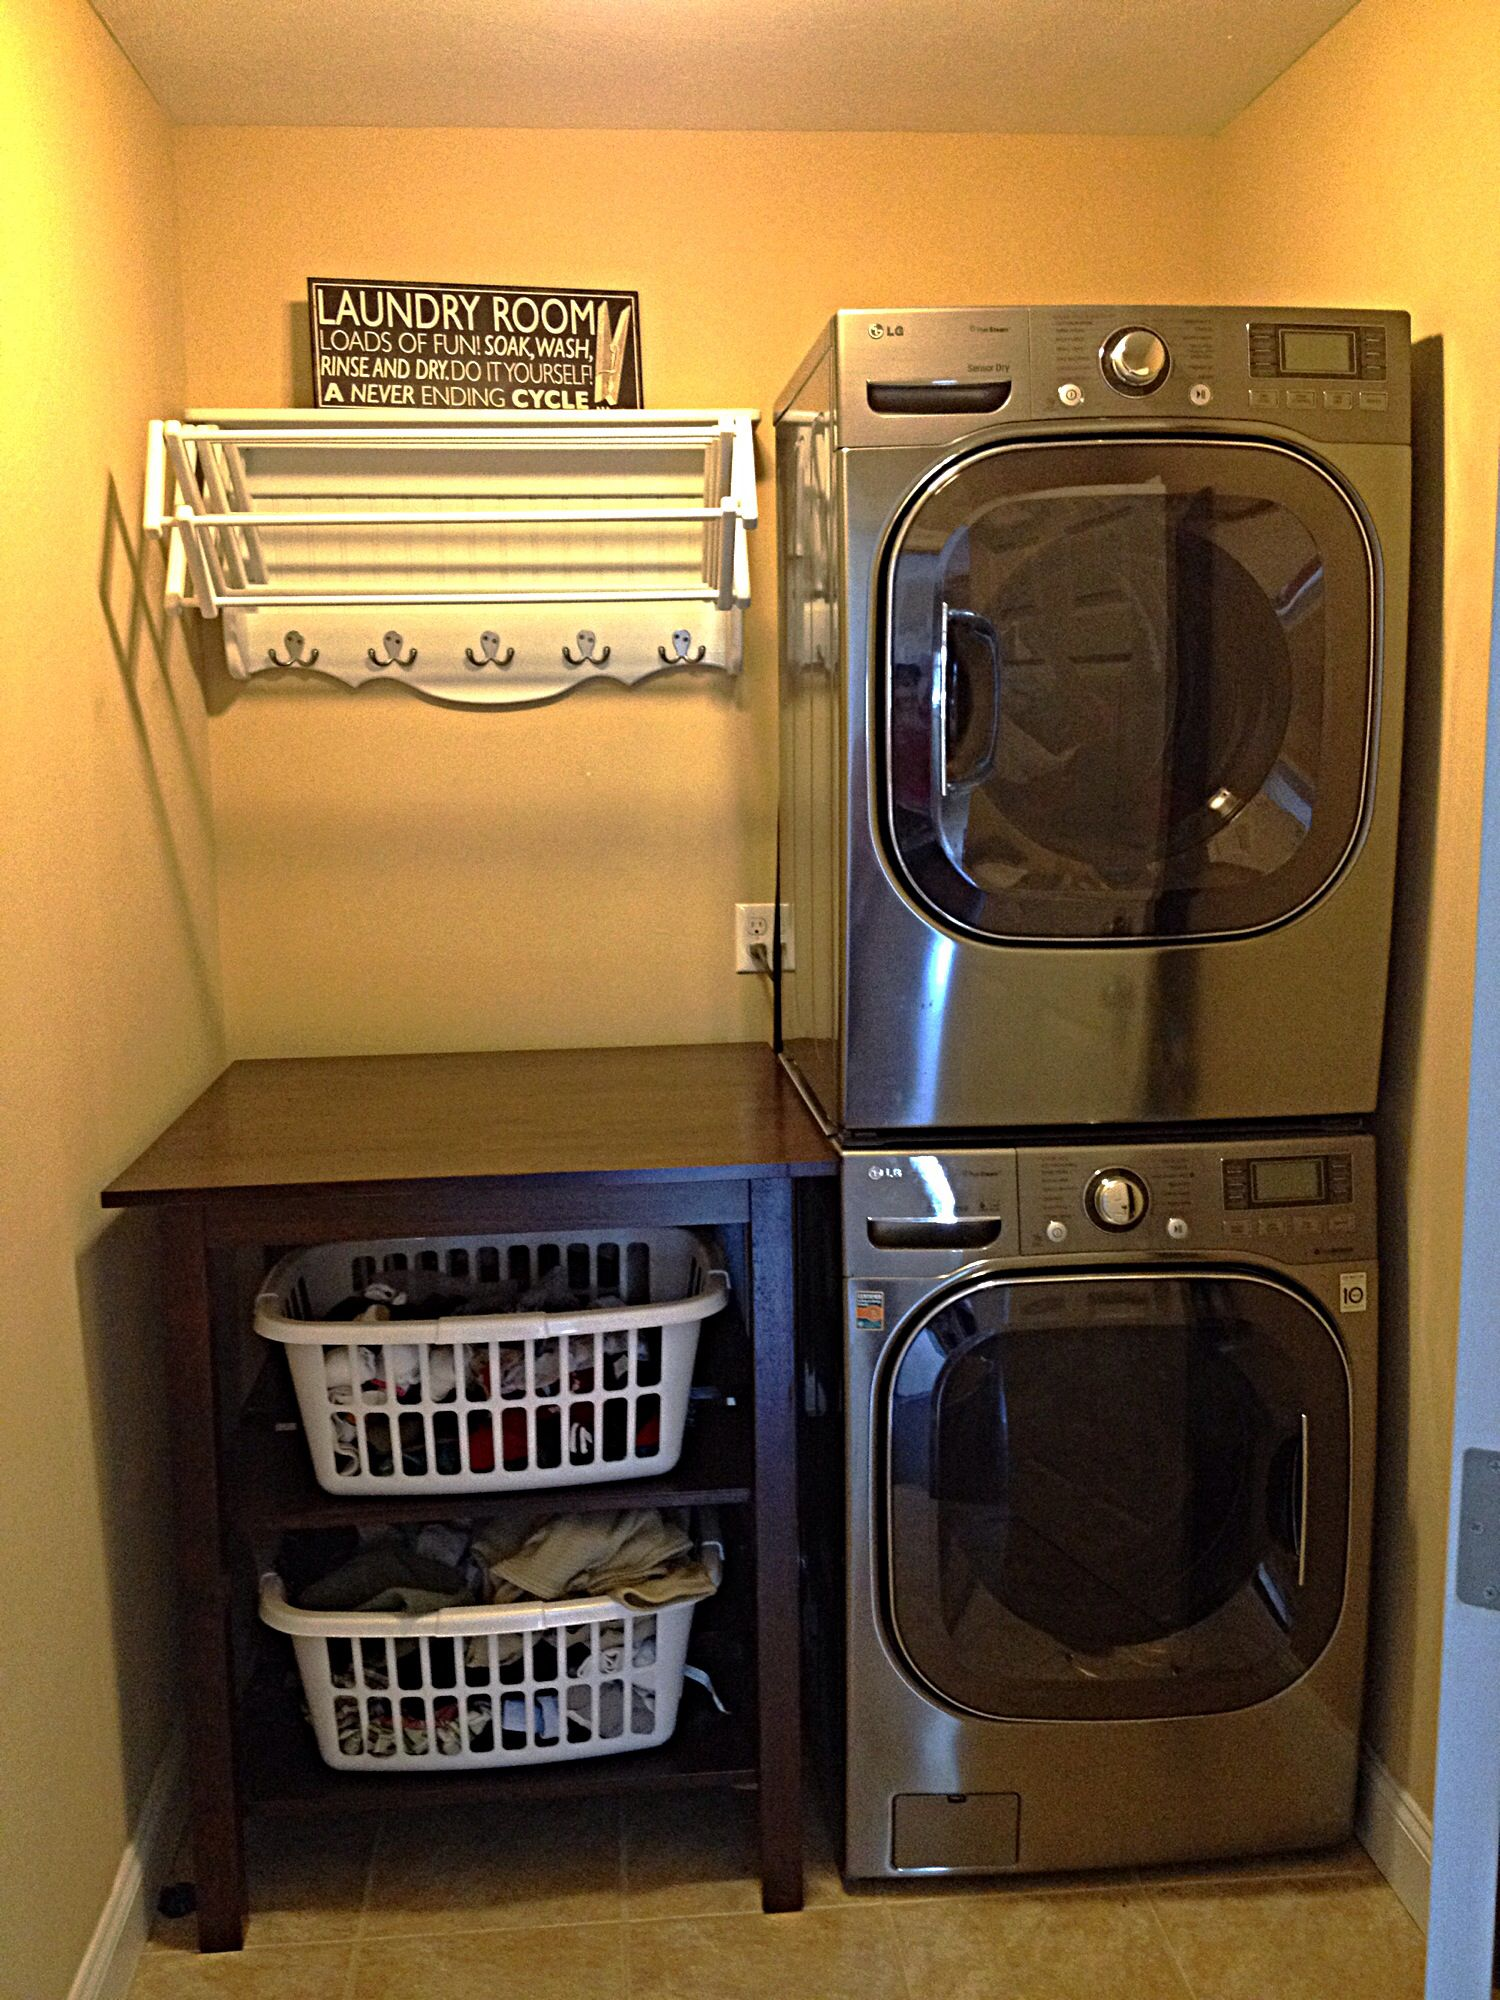 Finished Laundry Room Washer Dryer Stacked To Create Room For Folding Table Basket Sto Washer Dryer Laundry Room Laundry Room Storage Shelves Laundry Room Diy